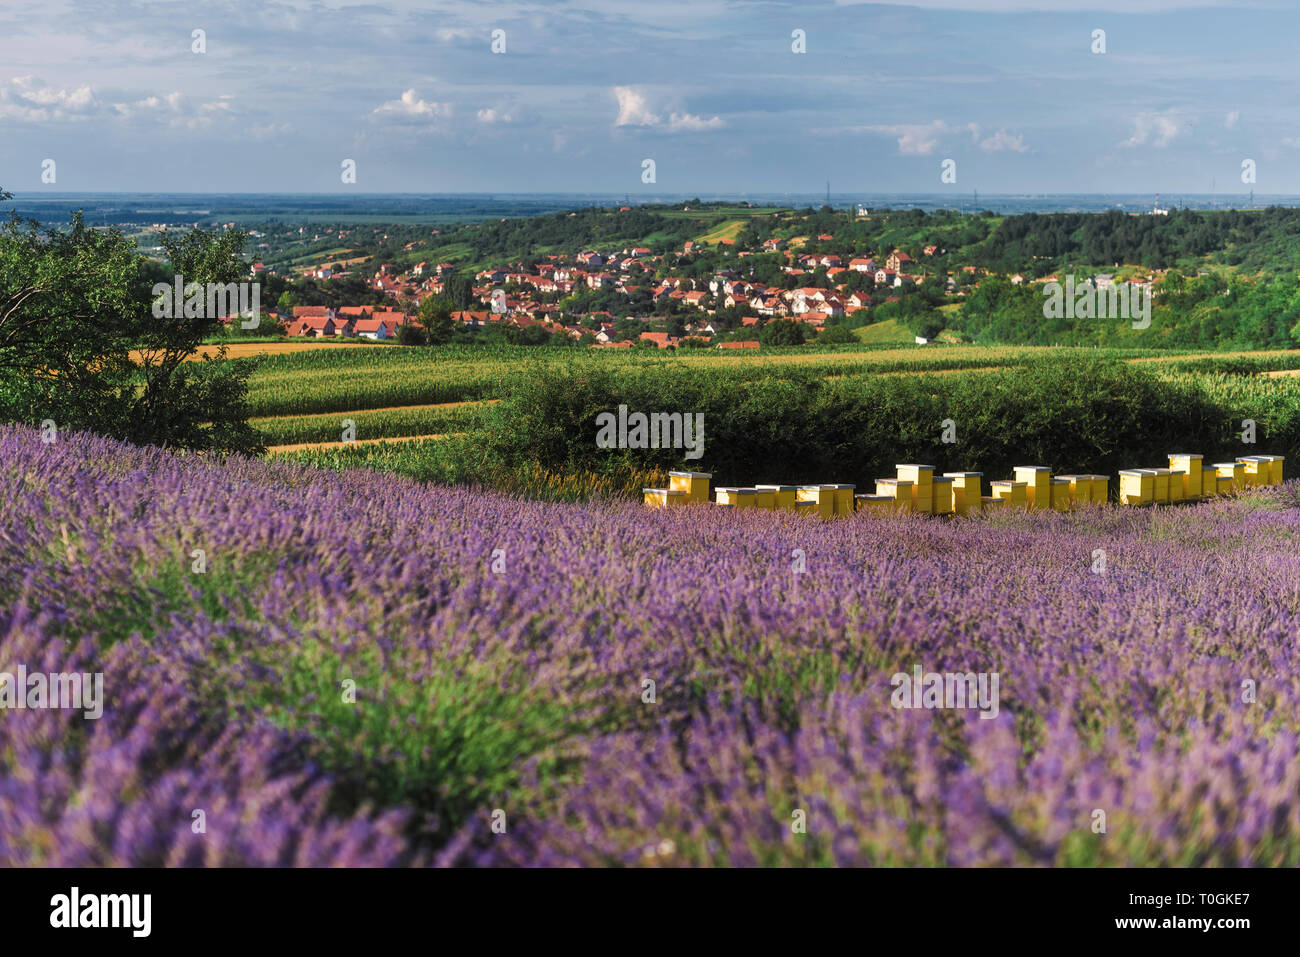 Apiary on Blooming Lavender Field - Stock Image